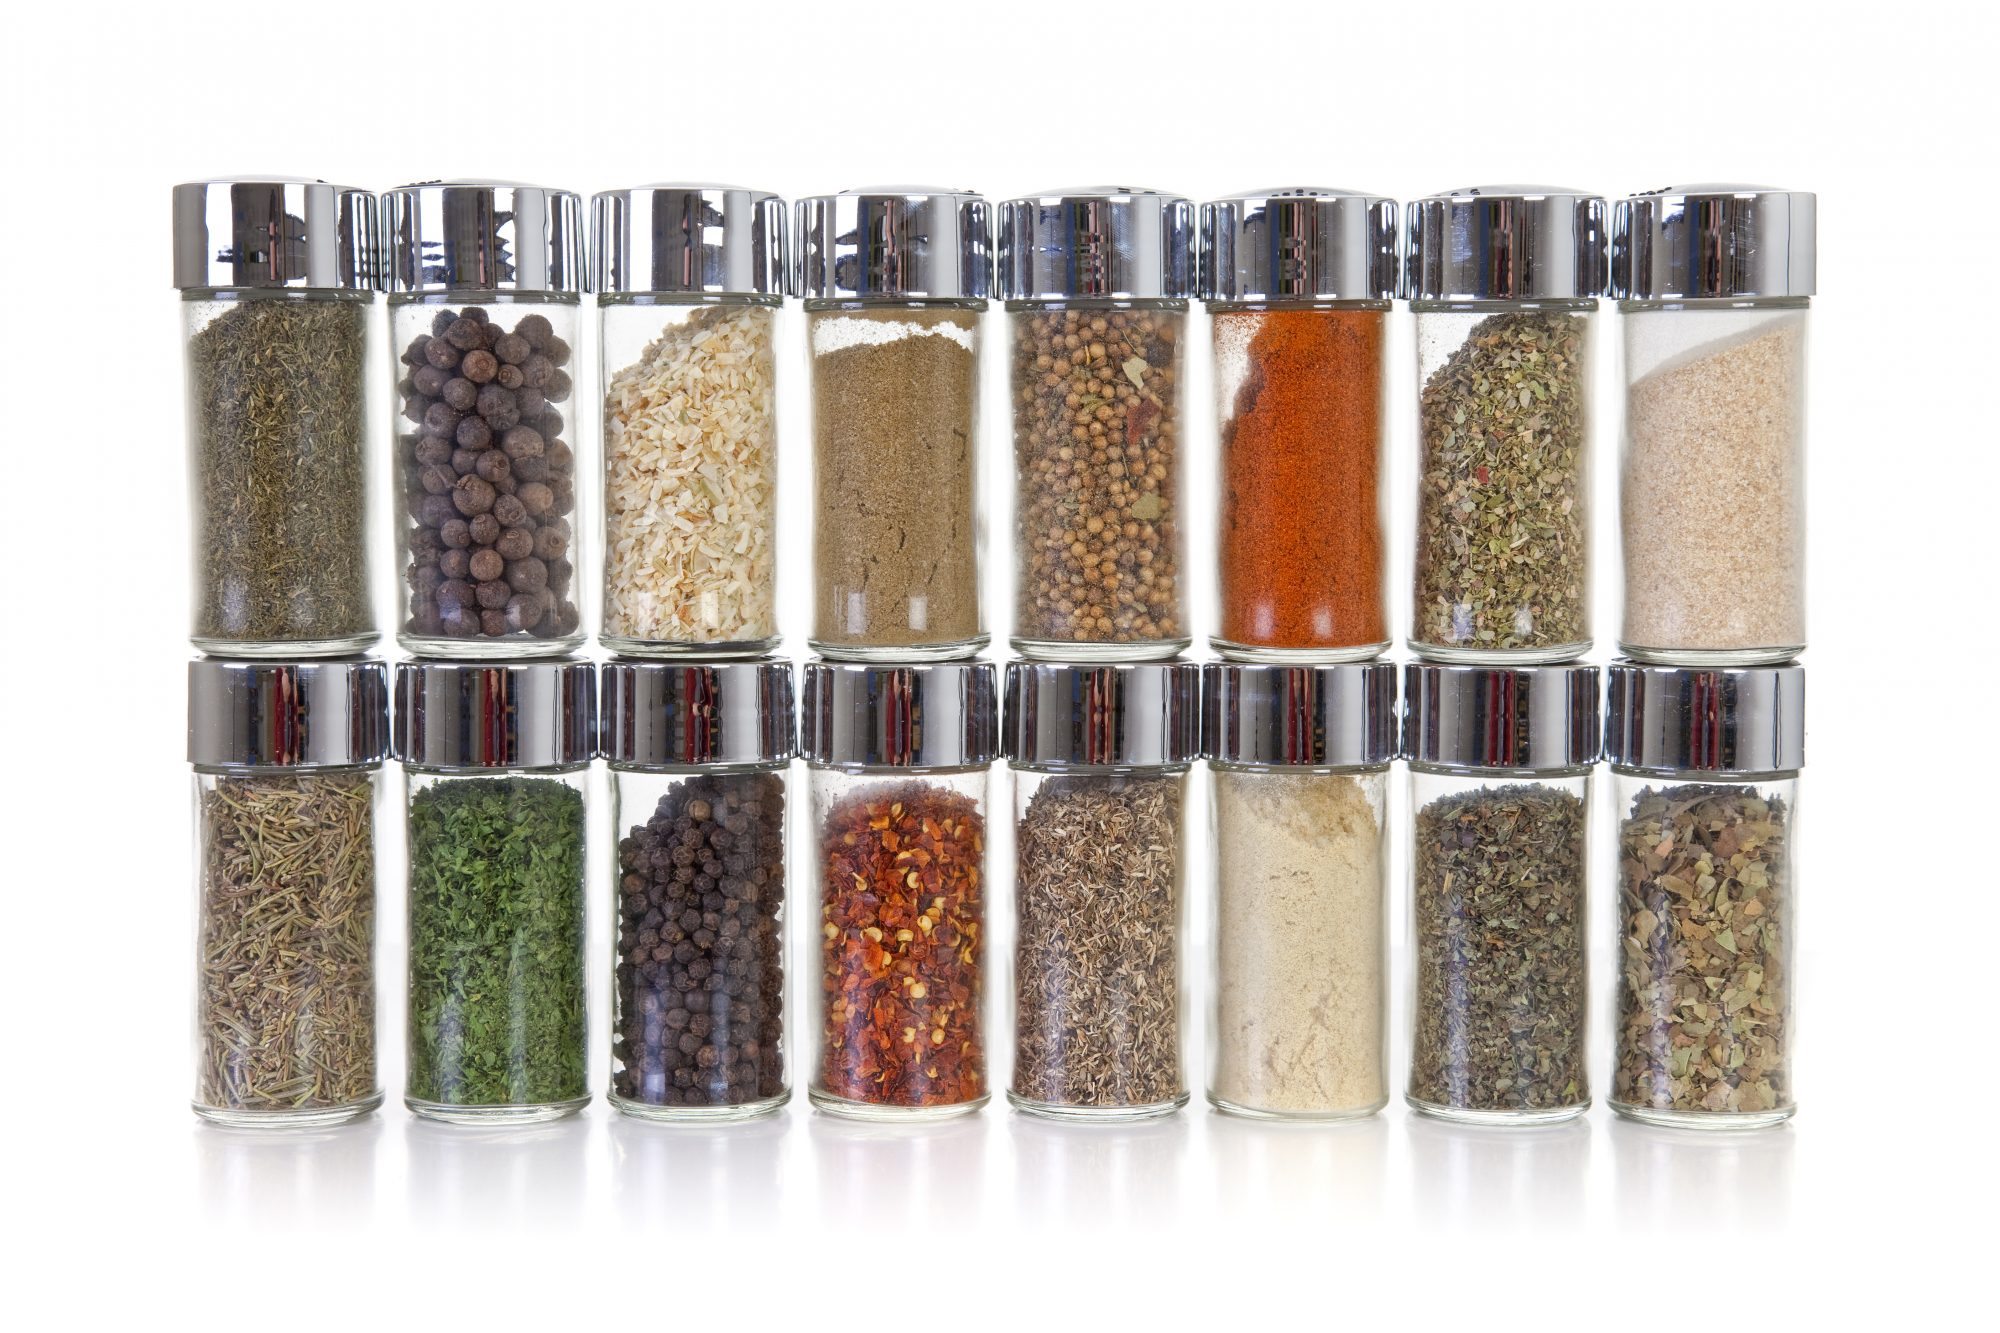 Row of jars with spices